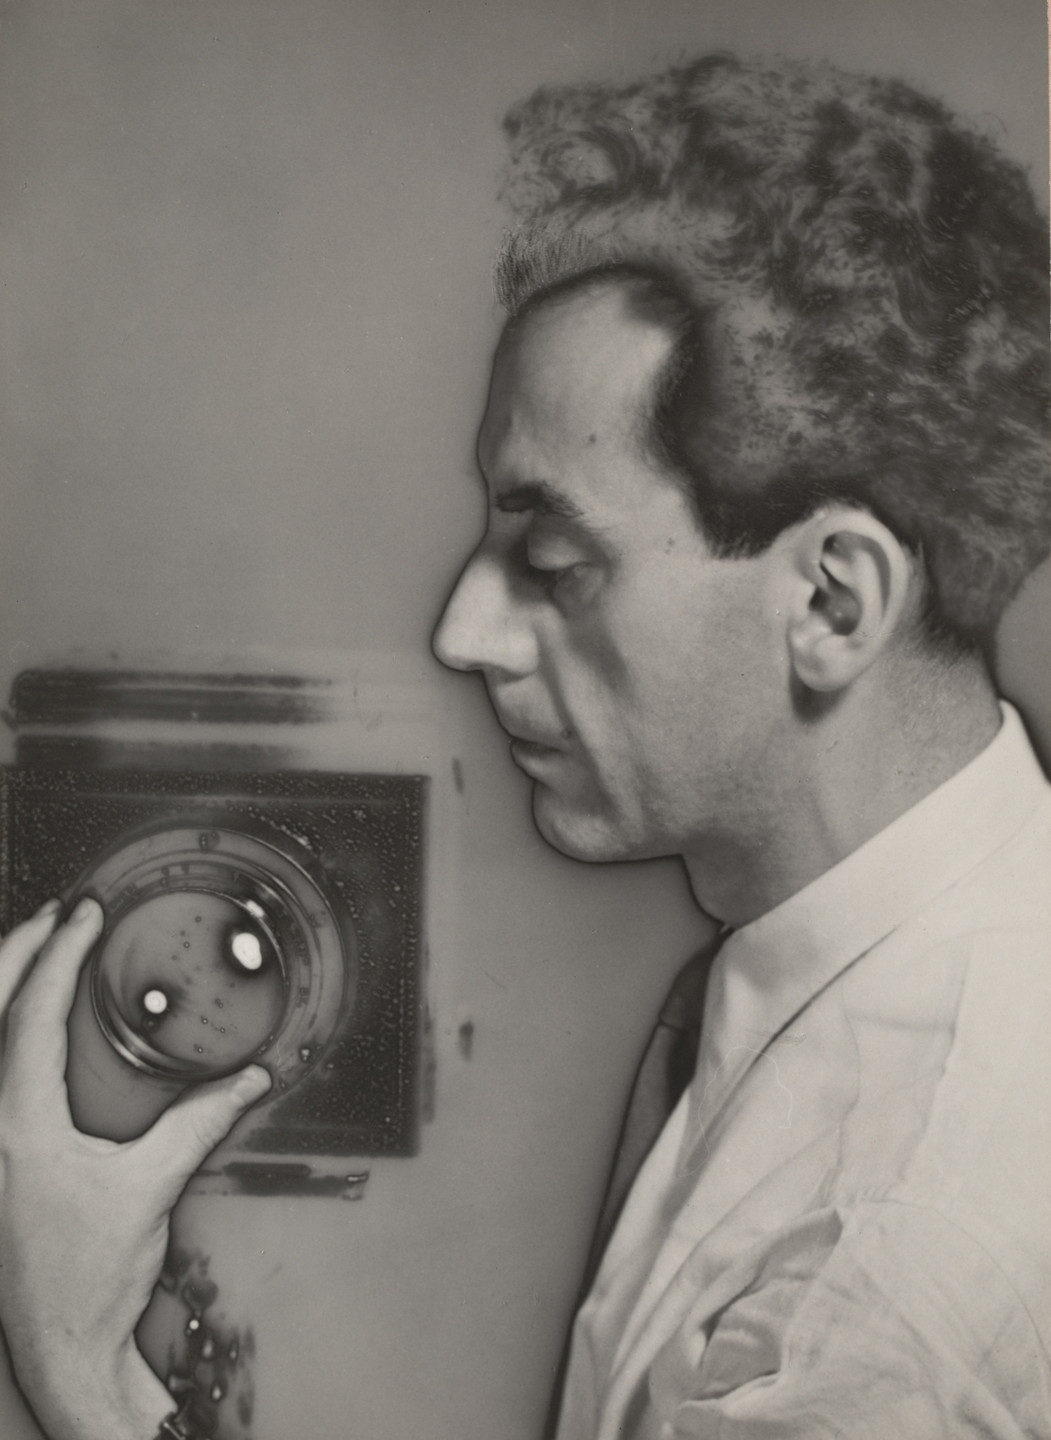 Man Ray (Emmanuel Radnitzky). Self-Portrait with Camera. 1931